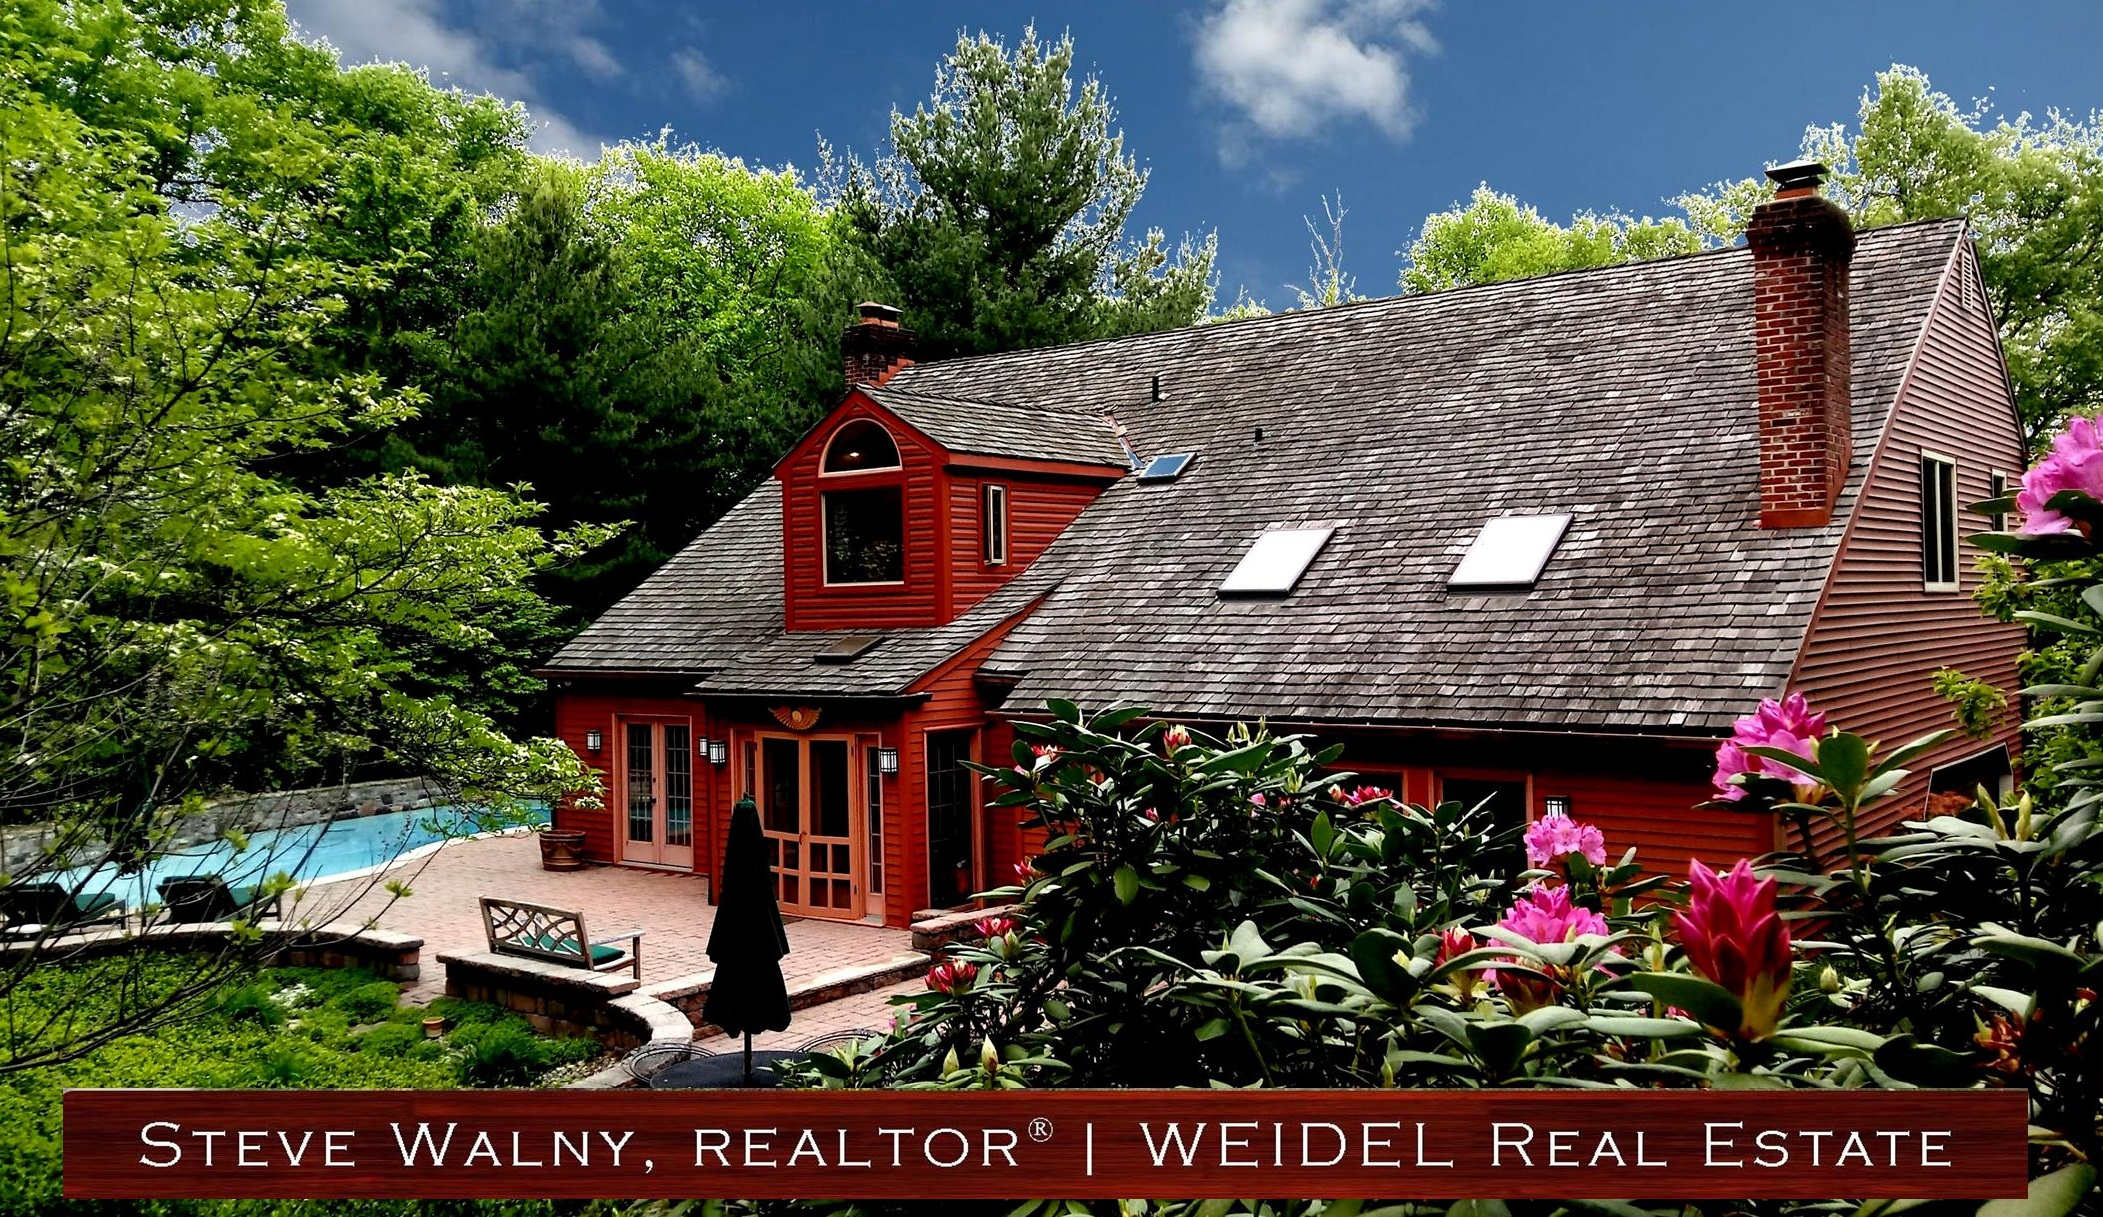 Steve Walny | New Hope Real Estate | WEIDEL Real Estate | New Hope PA Homes for Sale